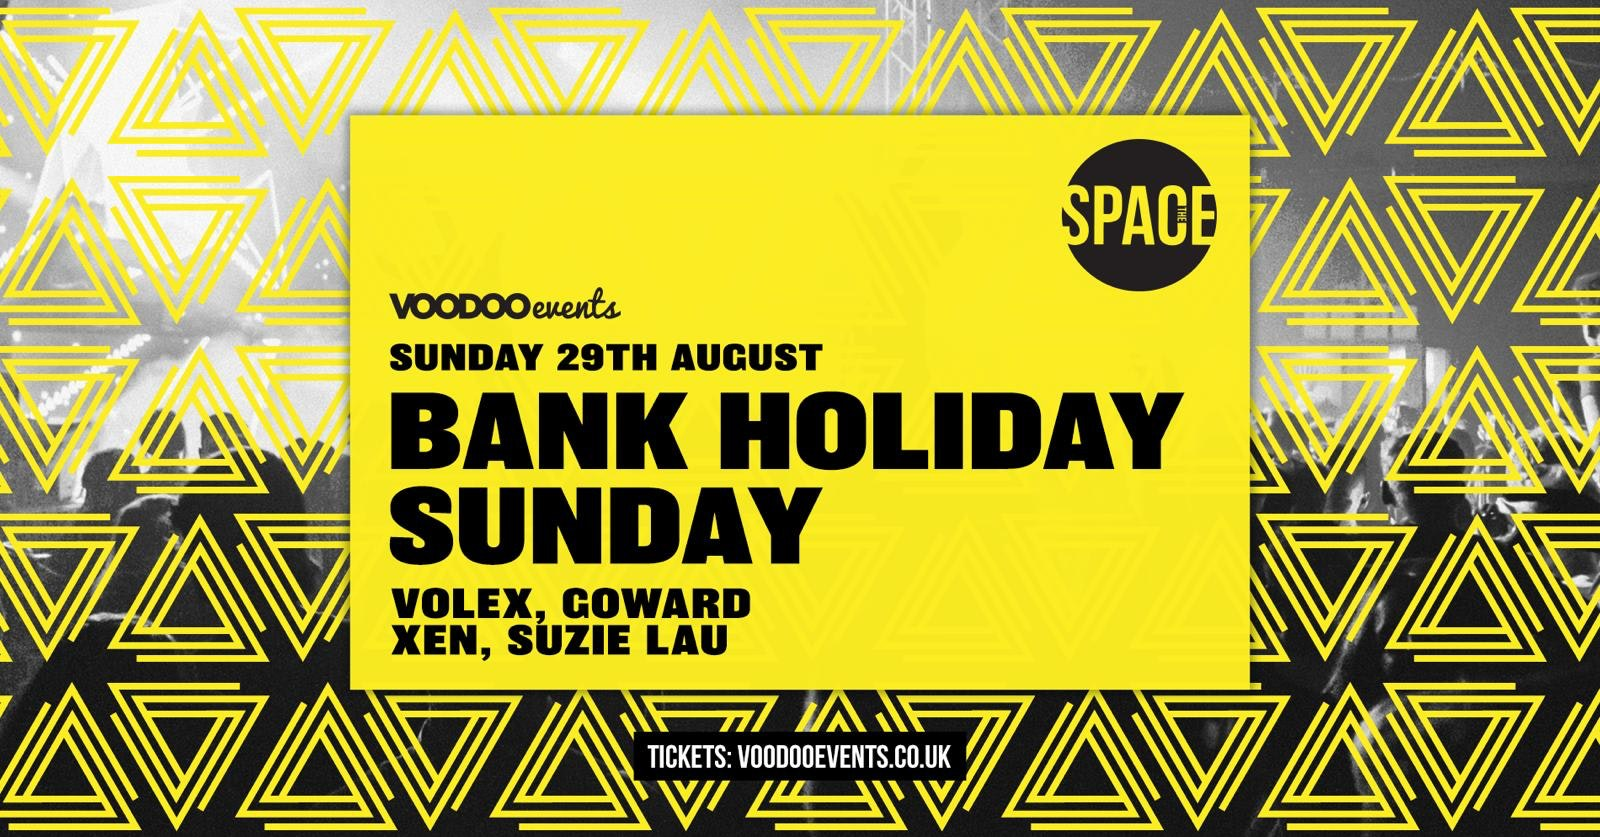 Bank Holiday Sunday at Space – 29th August